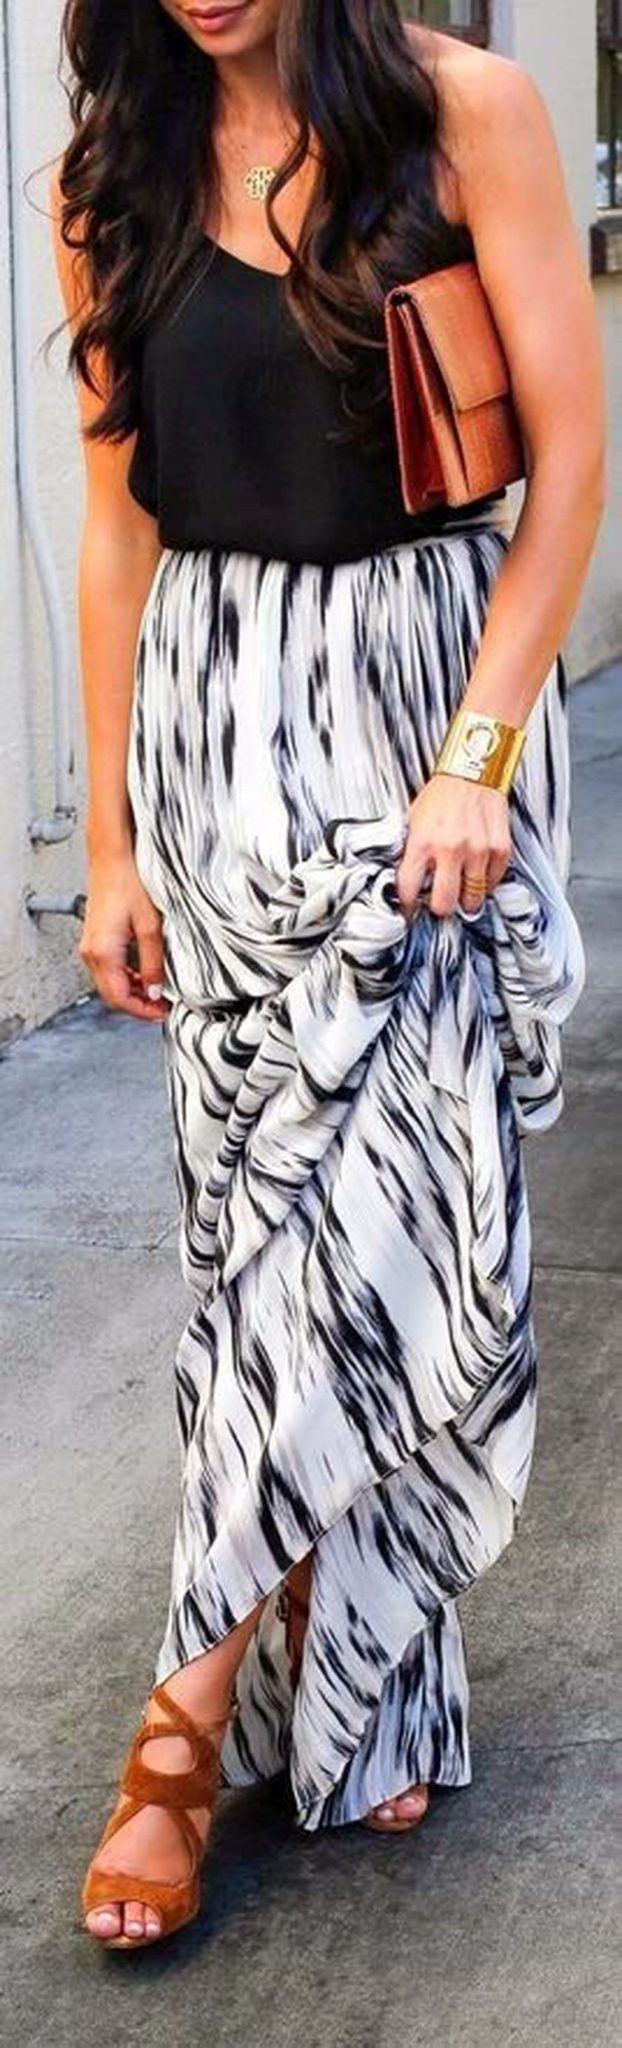 Summers casual maxi skirts ideas 47